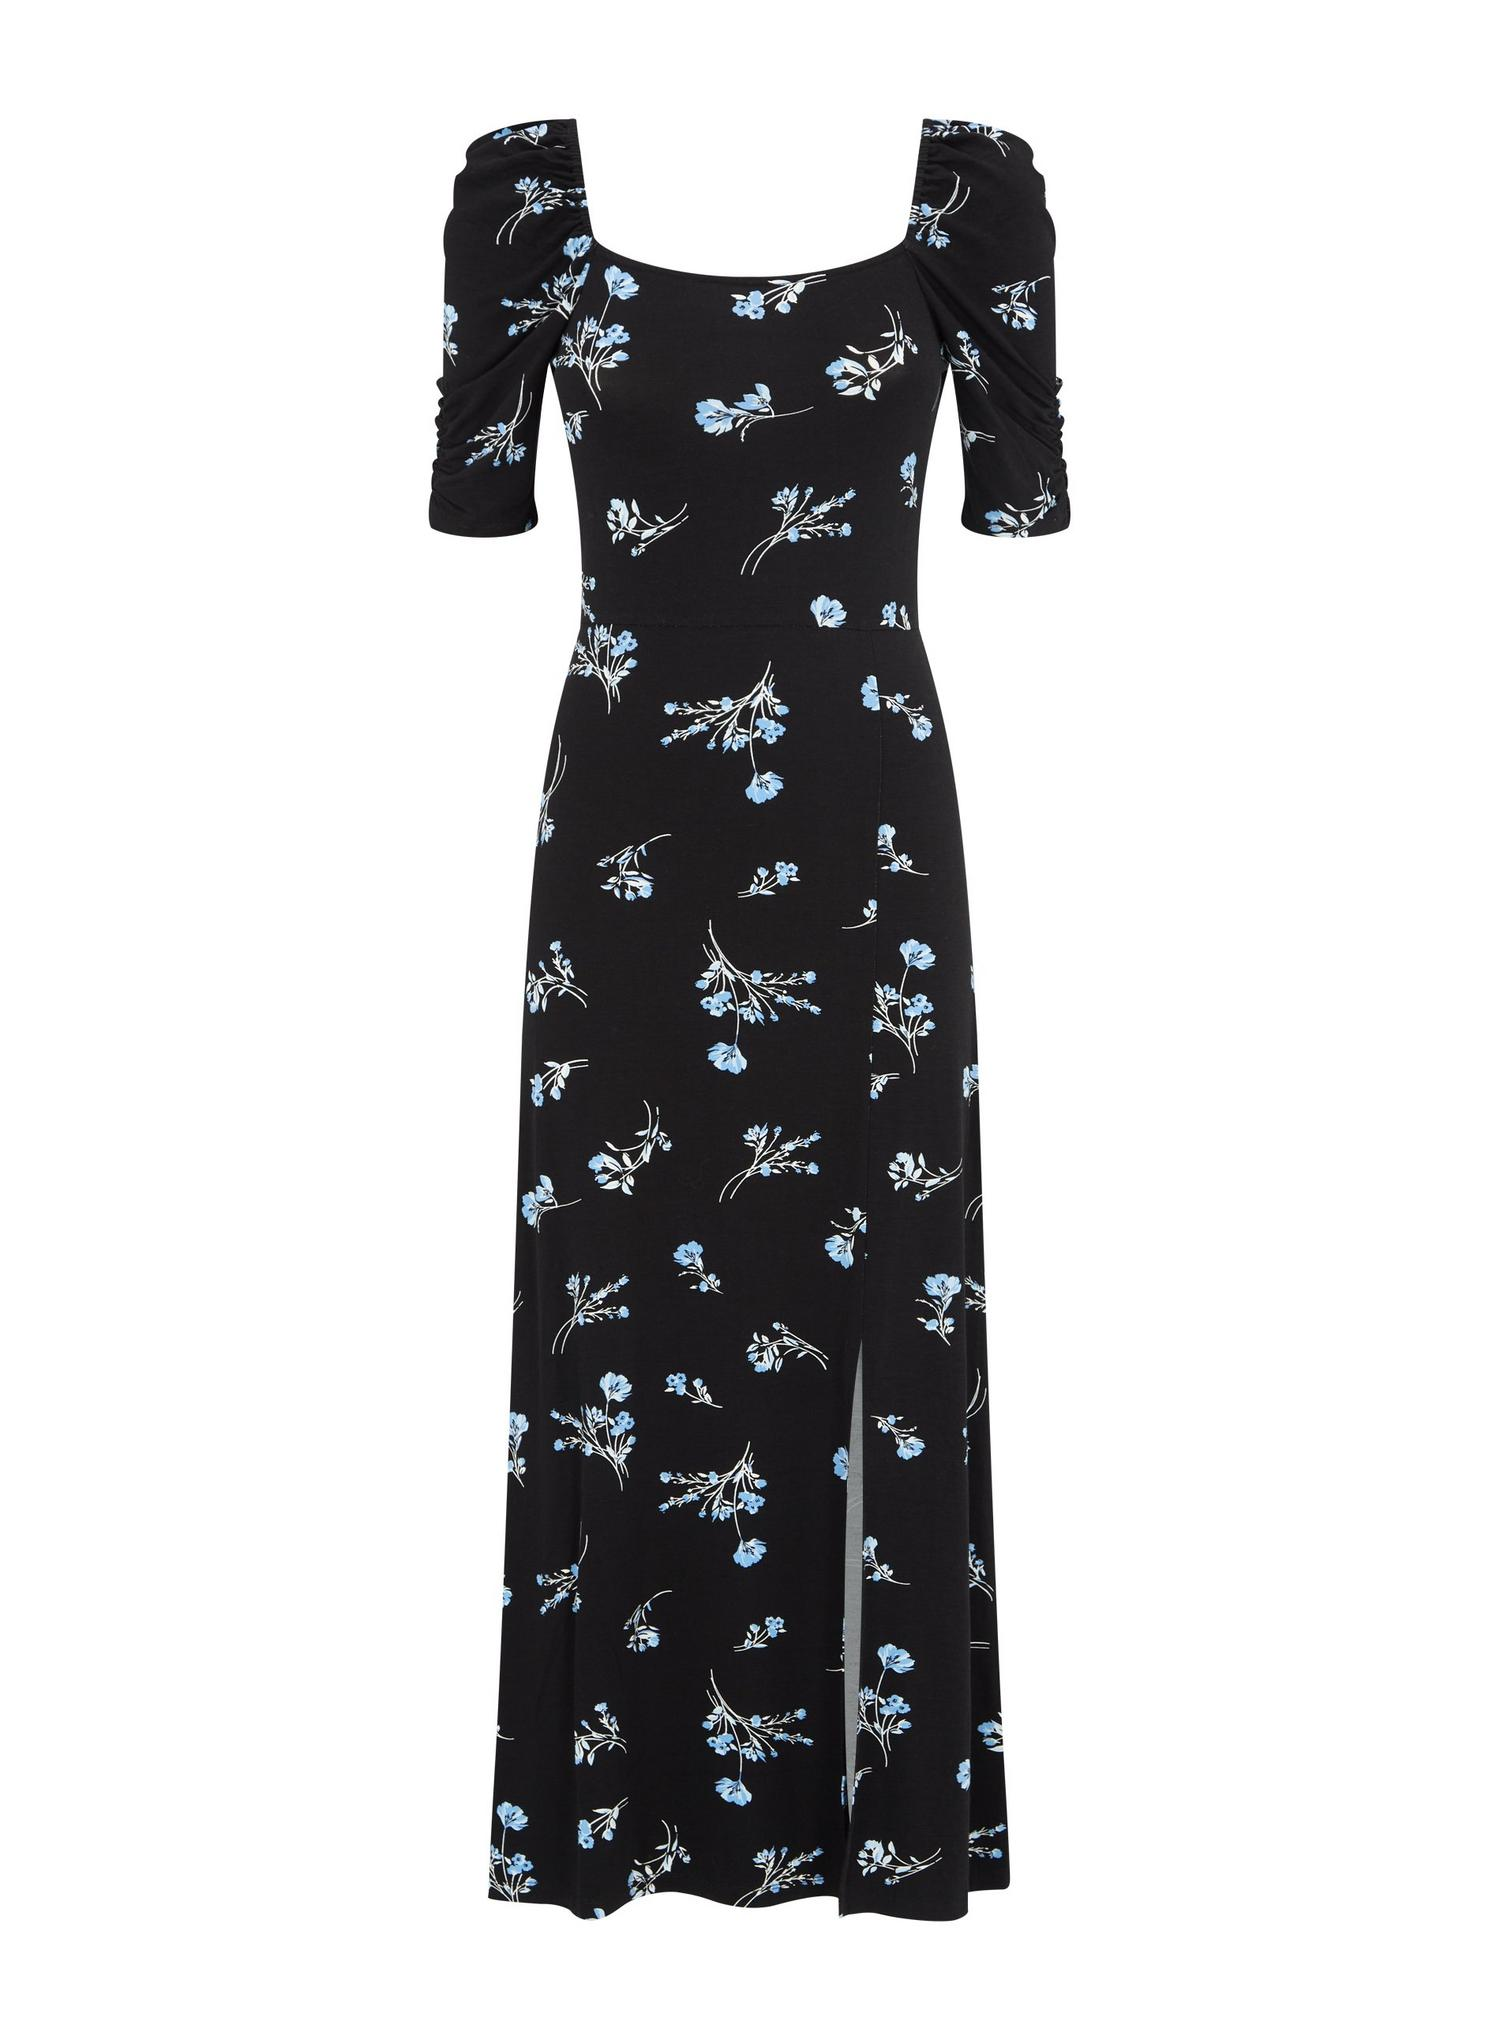 105 Black Floral Print Midi Dress image number 2